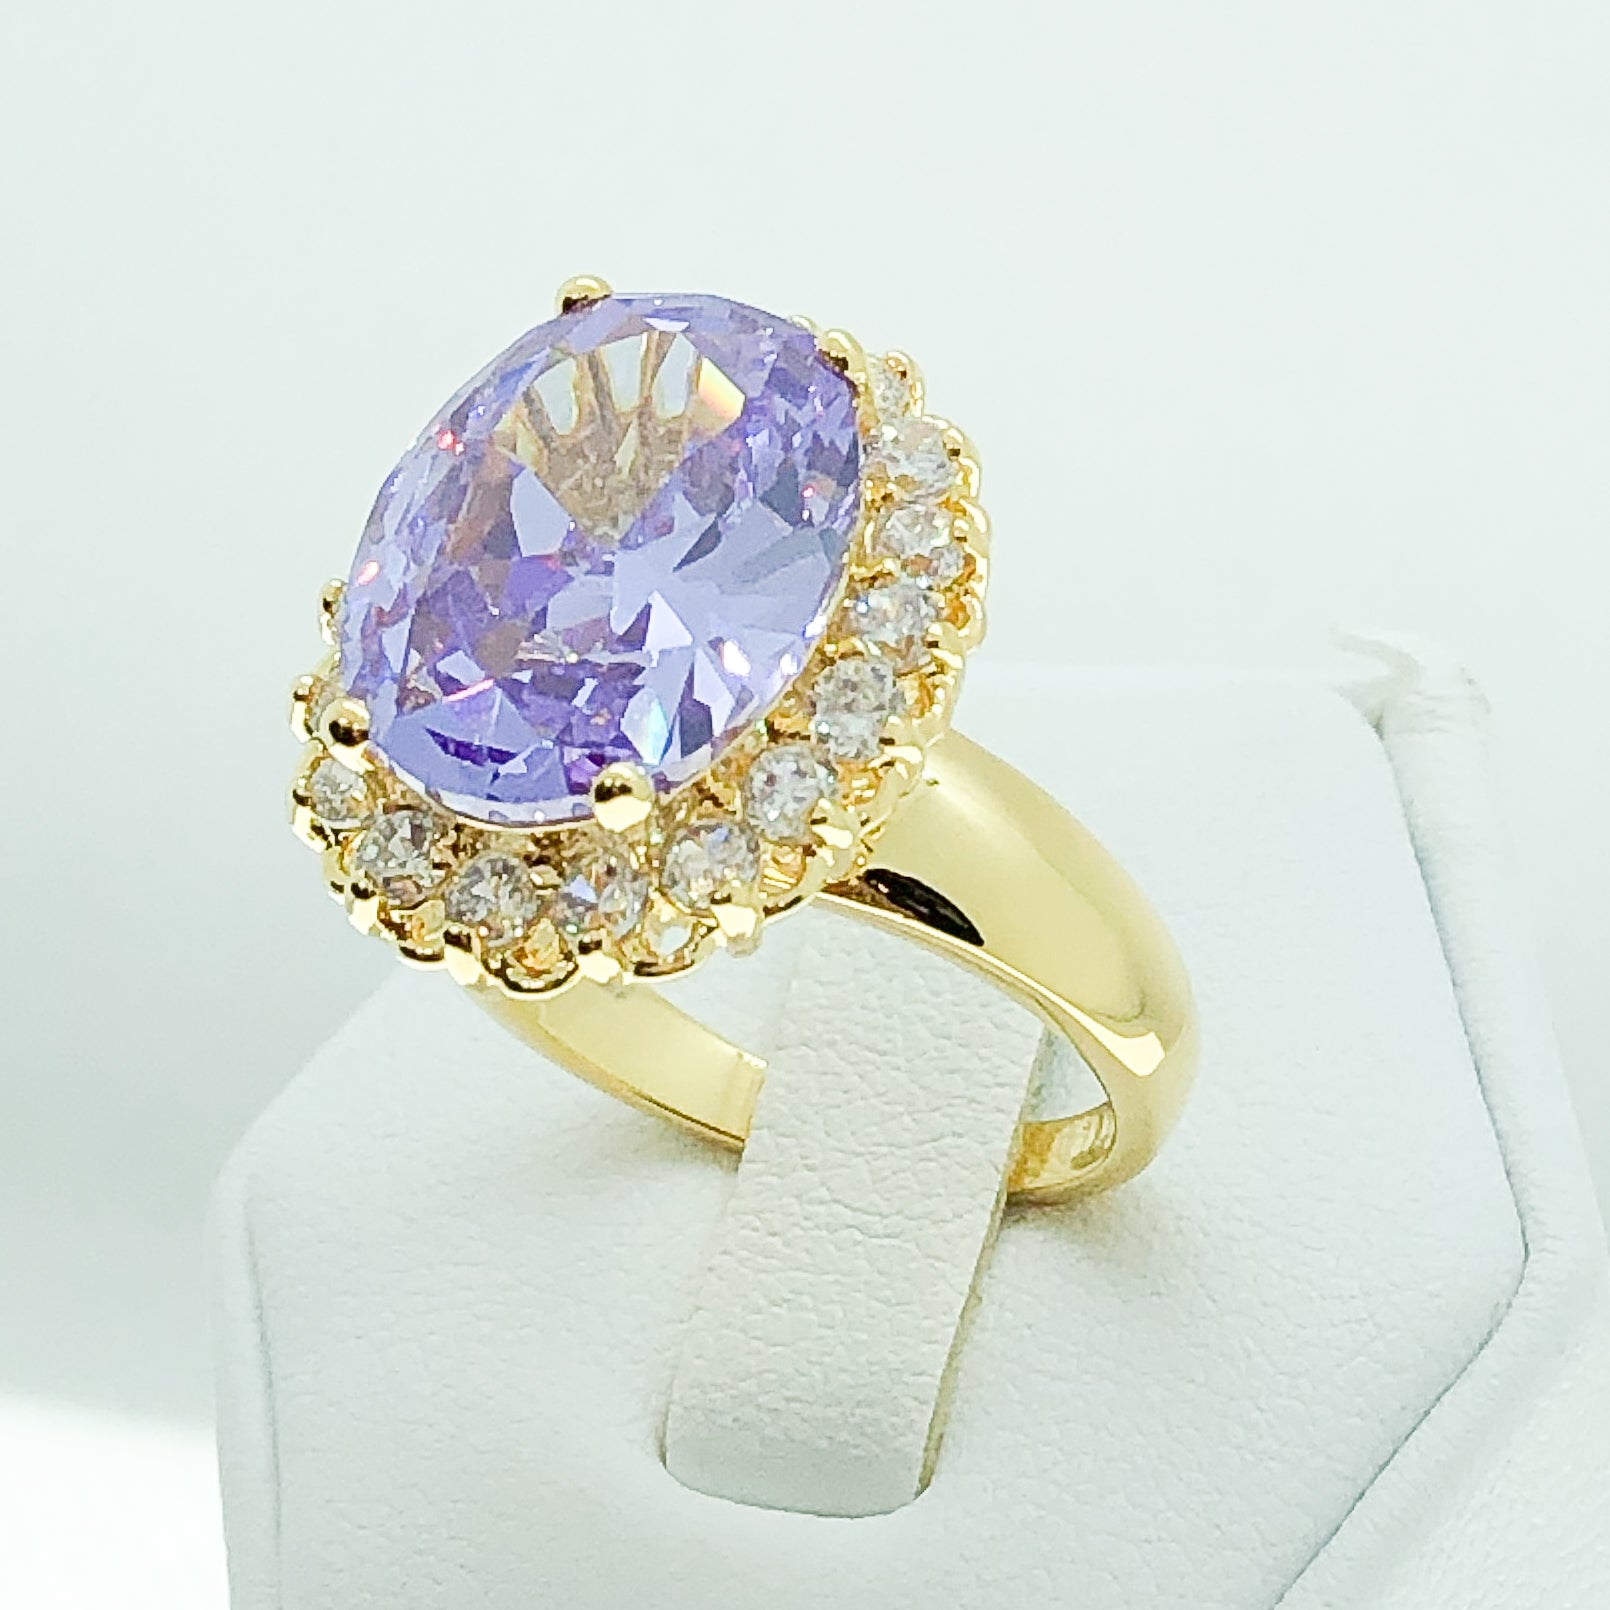 ID:R0350 Women Fashion Jewelry 18K Yellow Gold GF Fabulous Amethyst Crystal Ring With Diamonique Accent Anniversary Gift